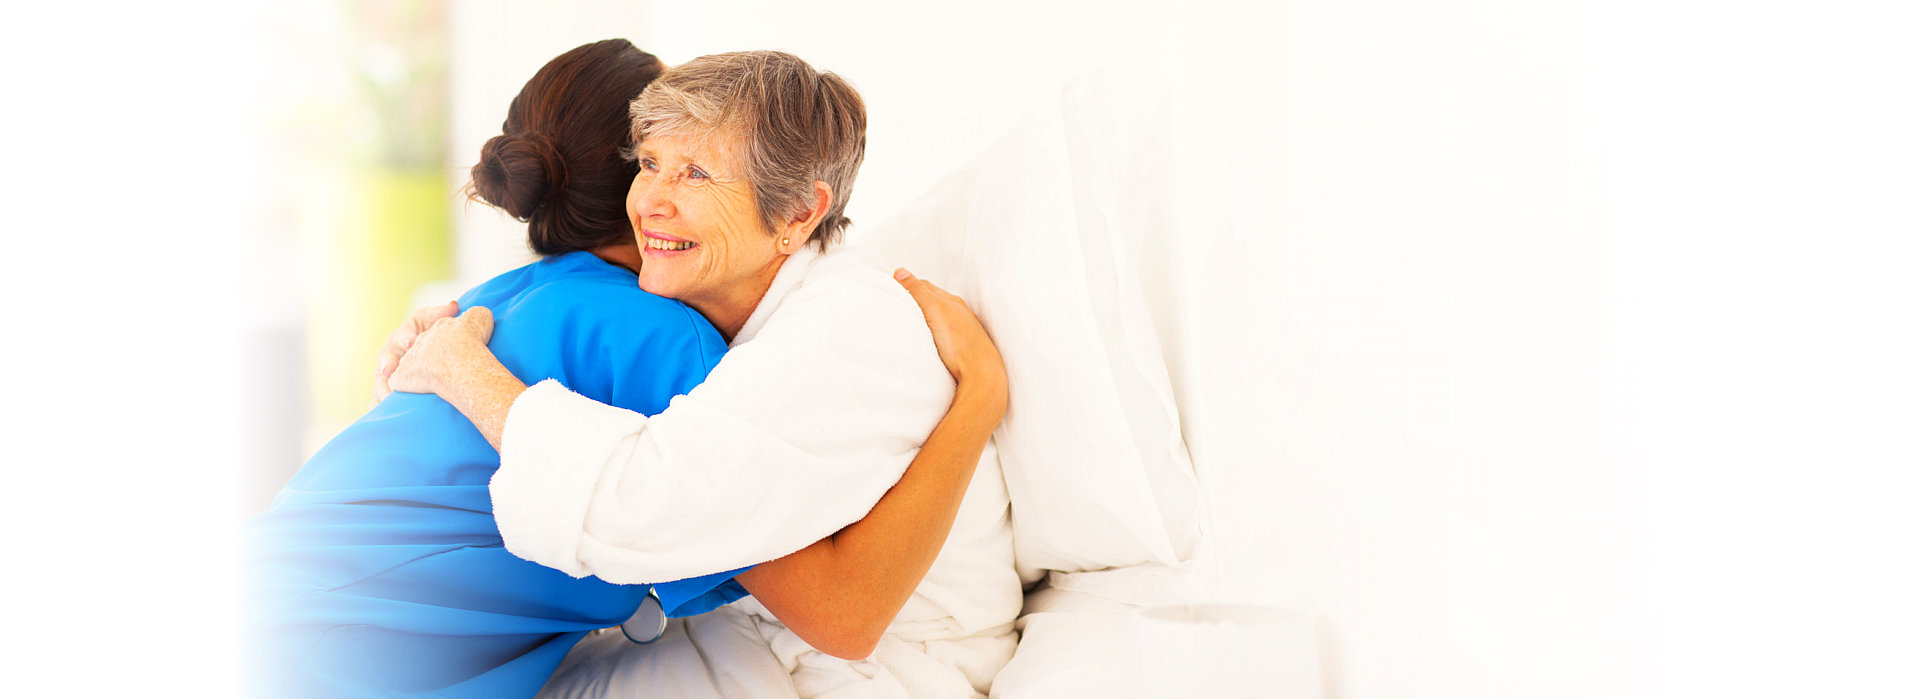 caregiver hugging patient